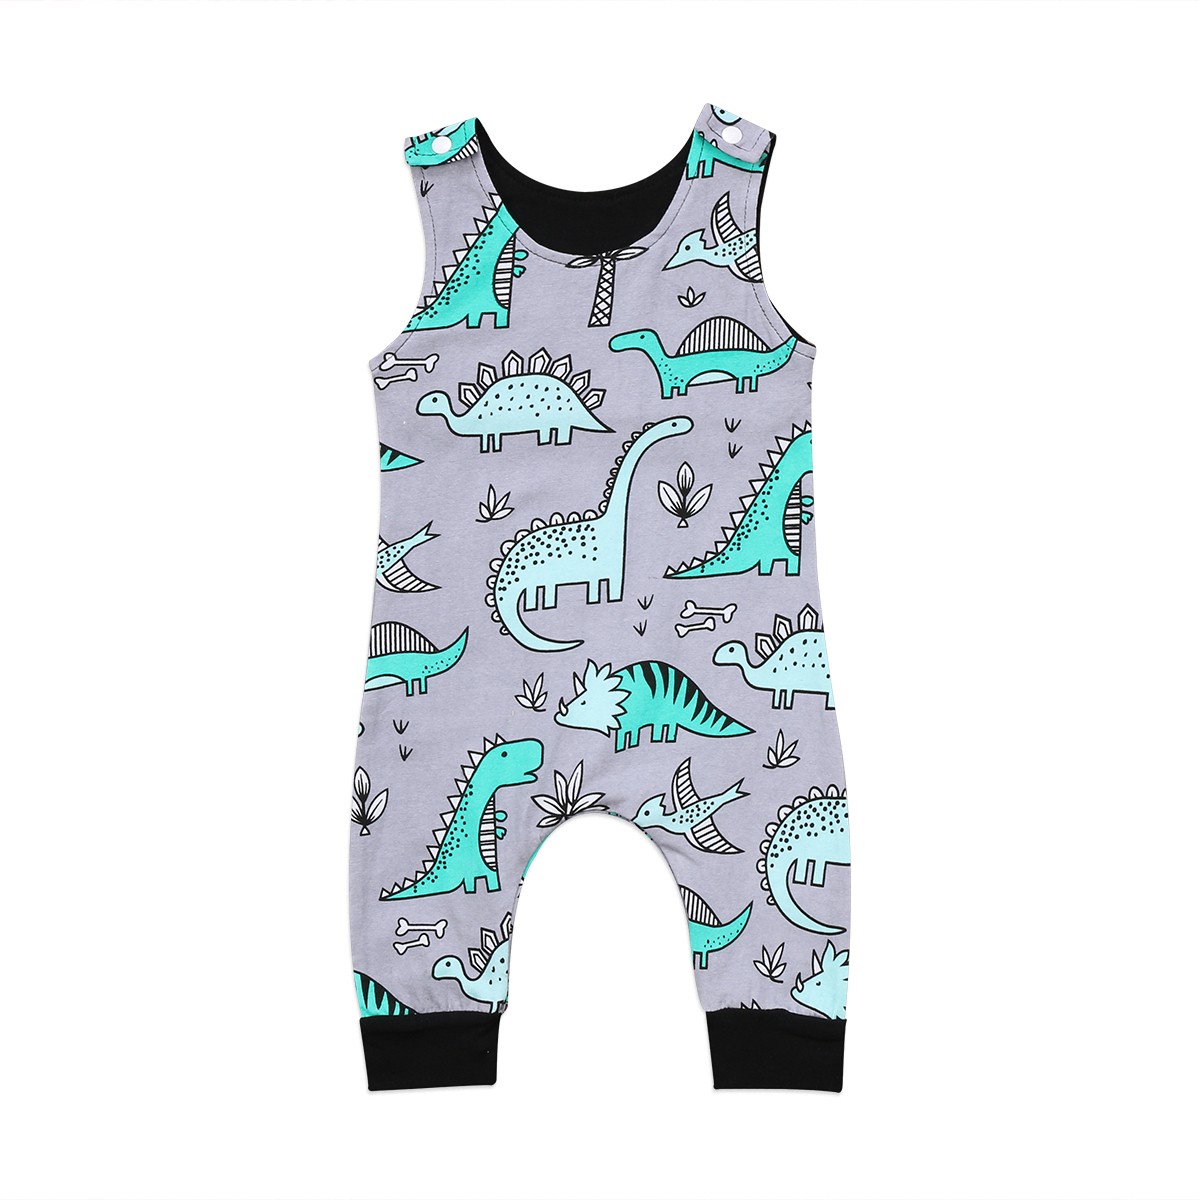 Baby Rompers Fashion Newborn Baby Boy Romper Sleevelss Jumpsuit Clothes Dinosaur Baby Clothes Cotton Outfits 0-24M 2pcs set newborn floral baby girl clothes 2017 summer sleeveless cotton ruffles romper baby bodysuit headband outfits sunsuit